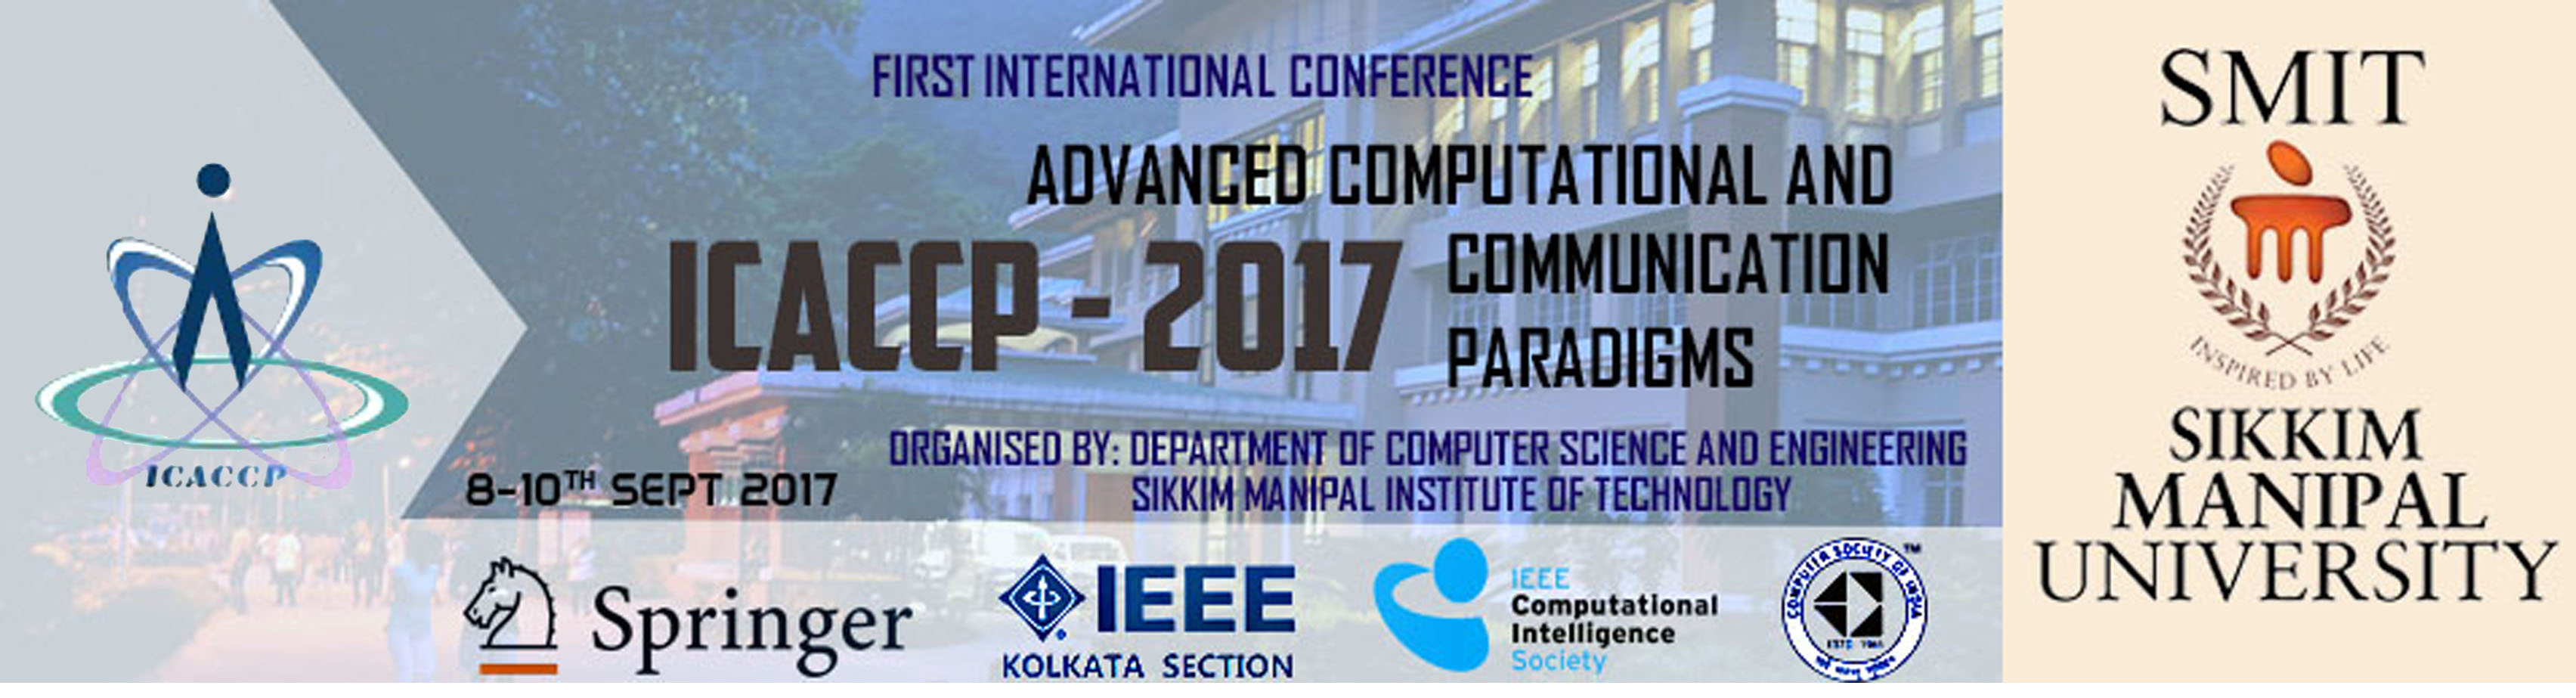 First International Conference on Advanced Computational and Communication Paradigms ICACCP 2017